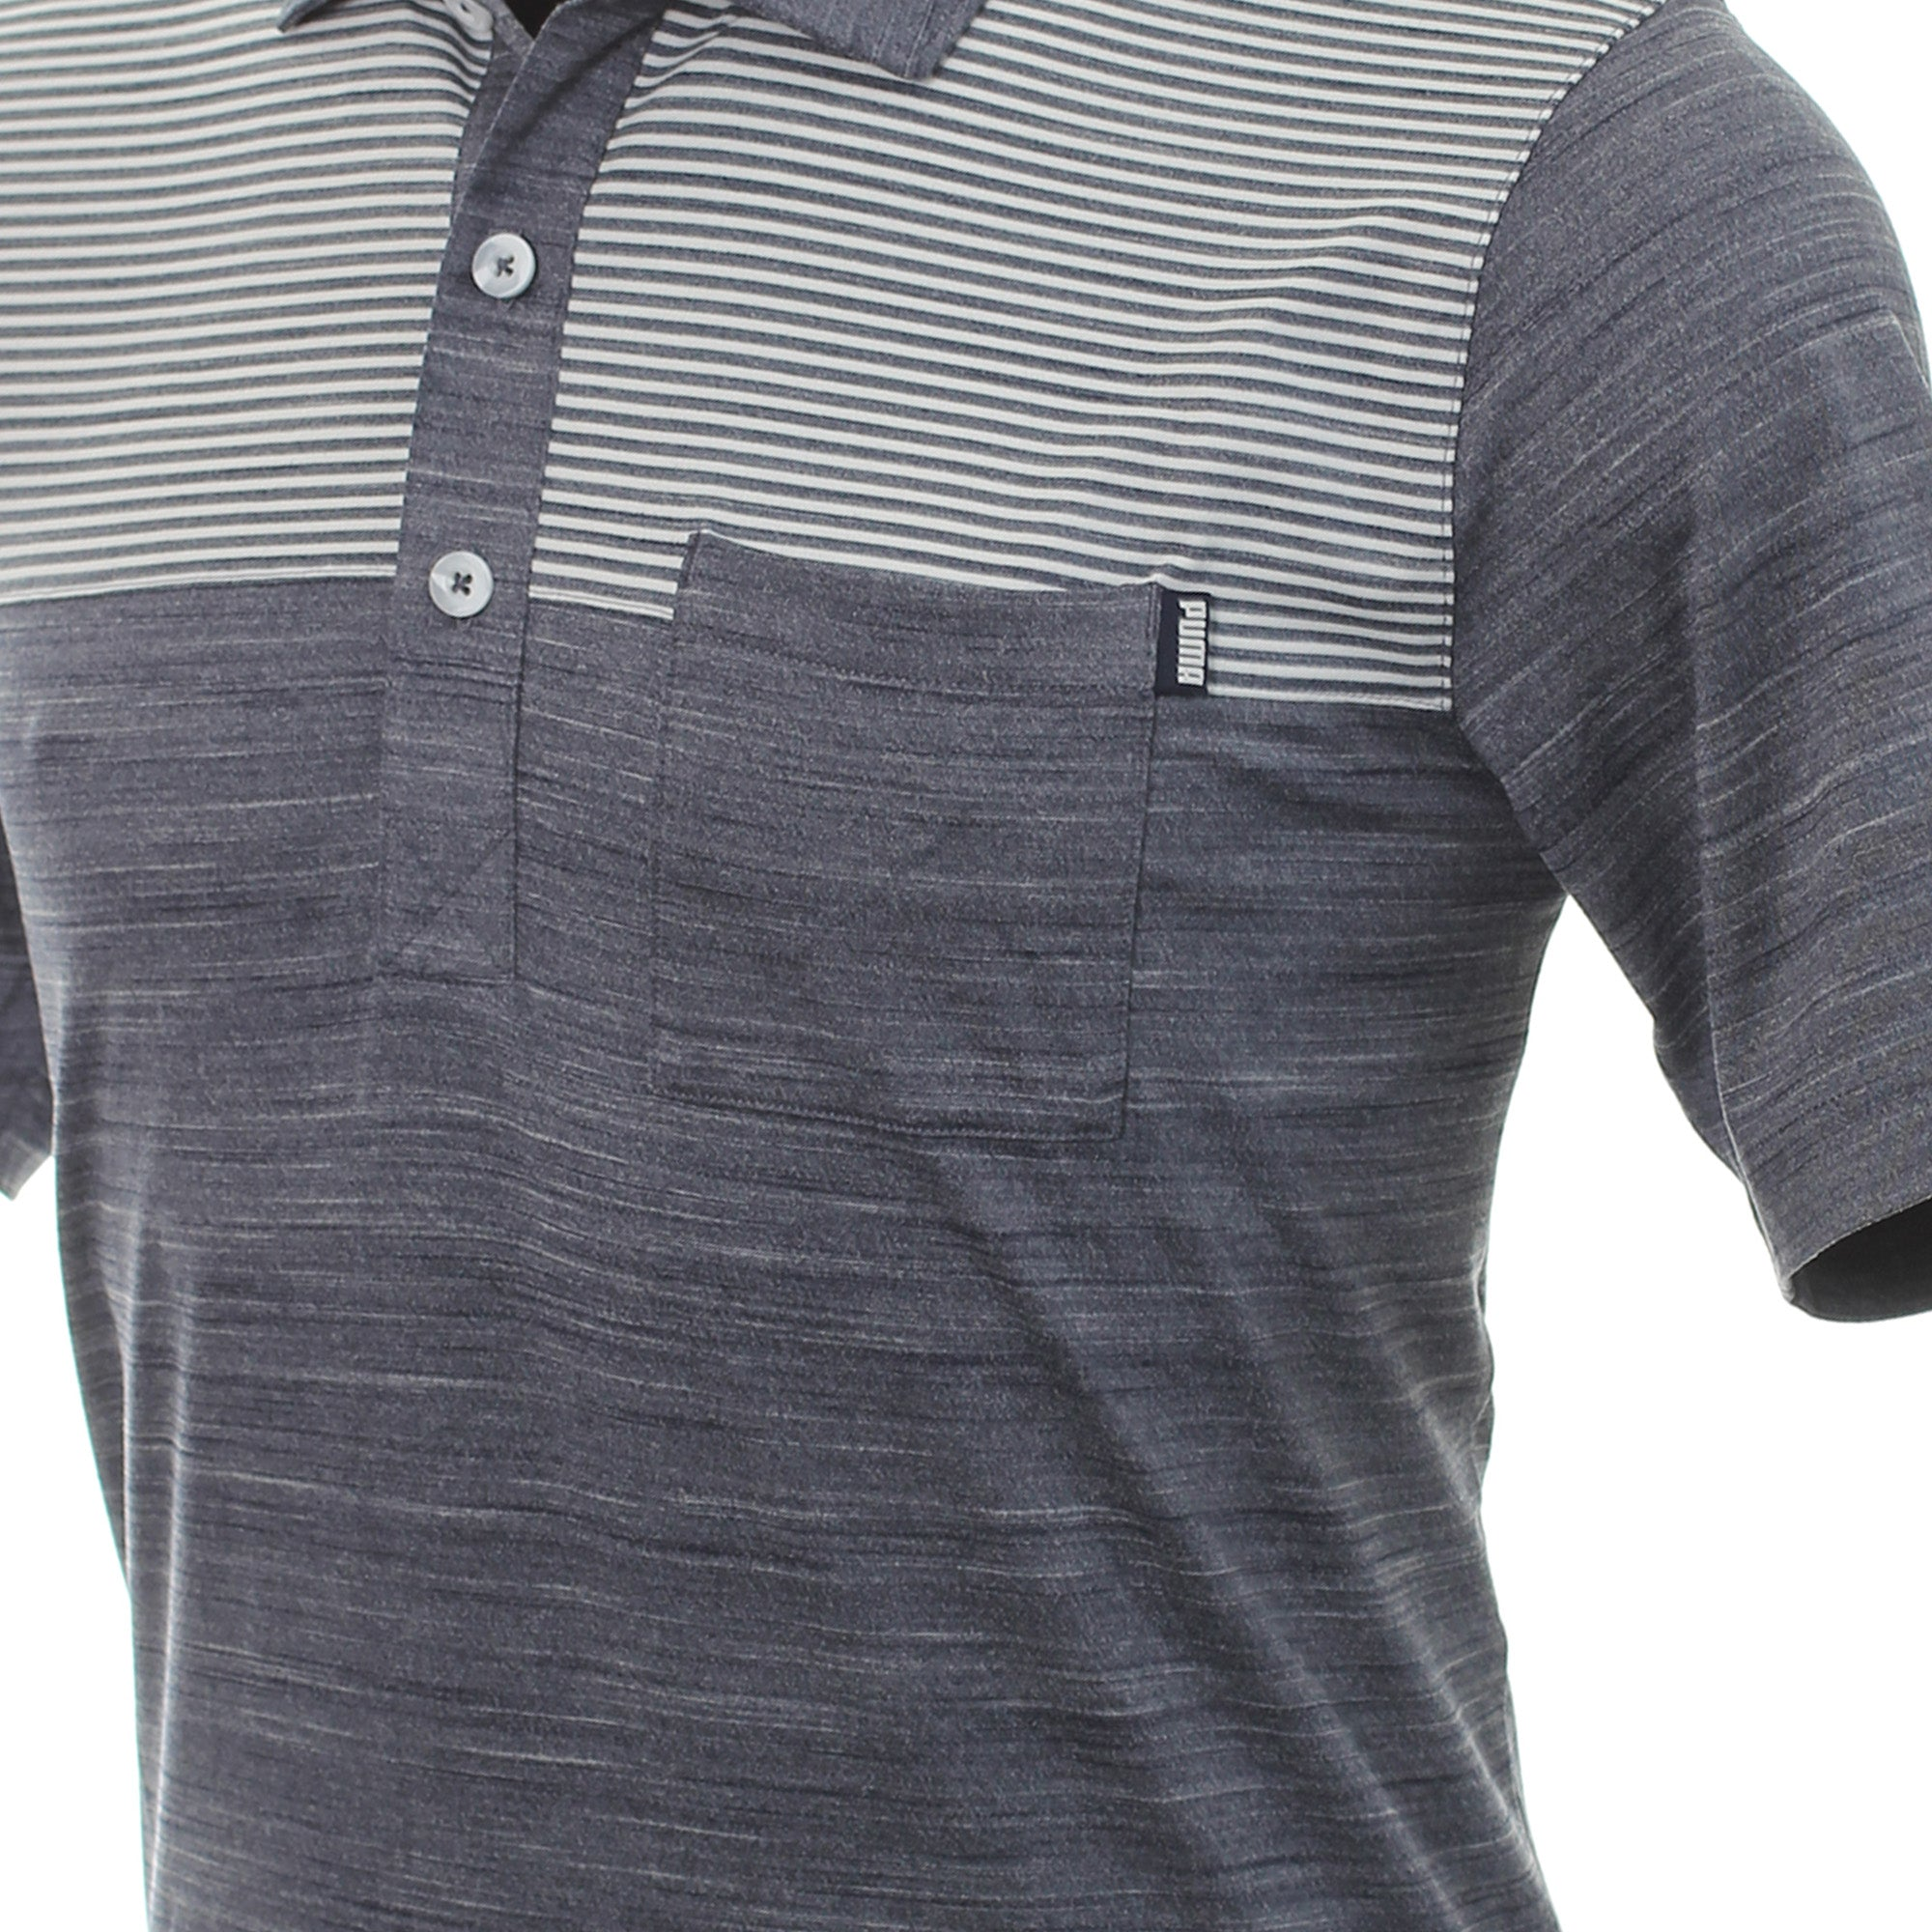 Puma Golf Cloudspun Pocket Polo Shirt